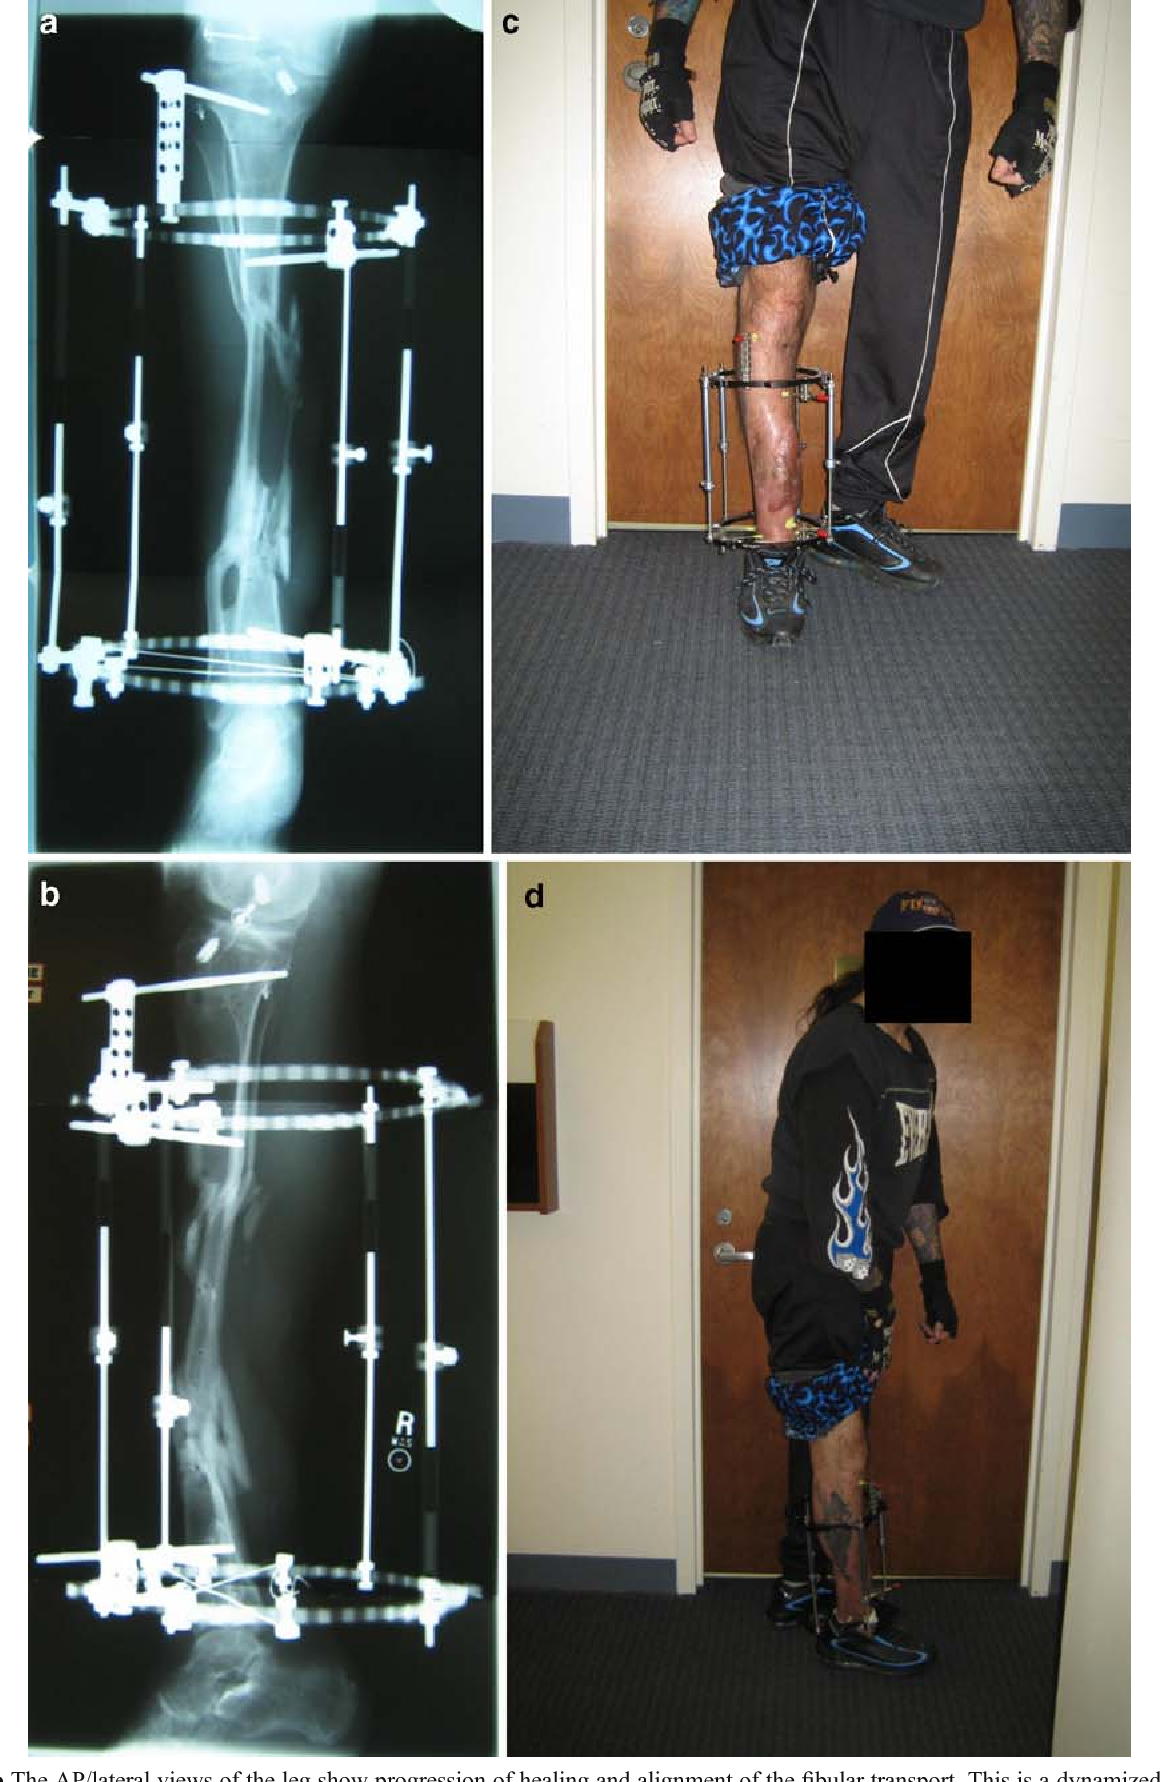 Fig. 5. a, b The AP/lateral views of the leg show progression of healing and alignment of the fibular transport. This is a dynamized frame. c, d Pictures of the patient standing and full weight bearing after frame modification and dynamization